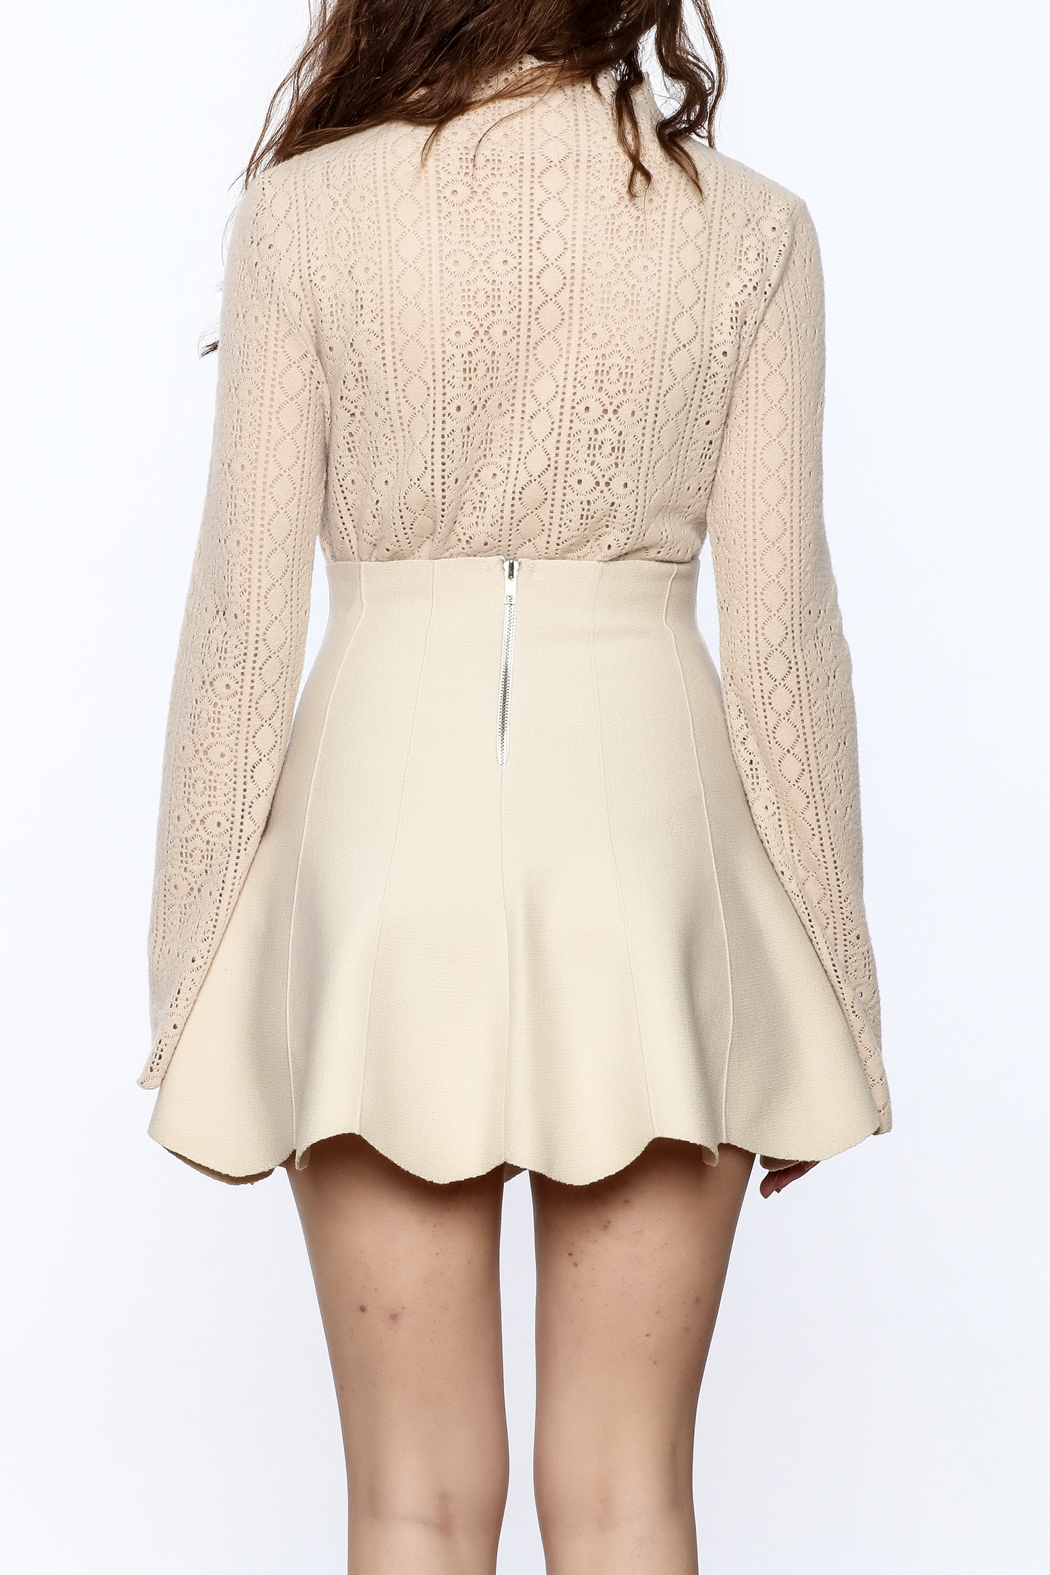 Pinkyotto Vintage Lace High Collar Top - Back Cropped Image